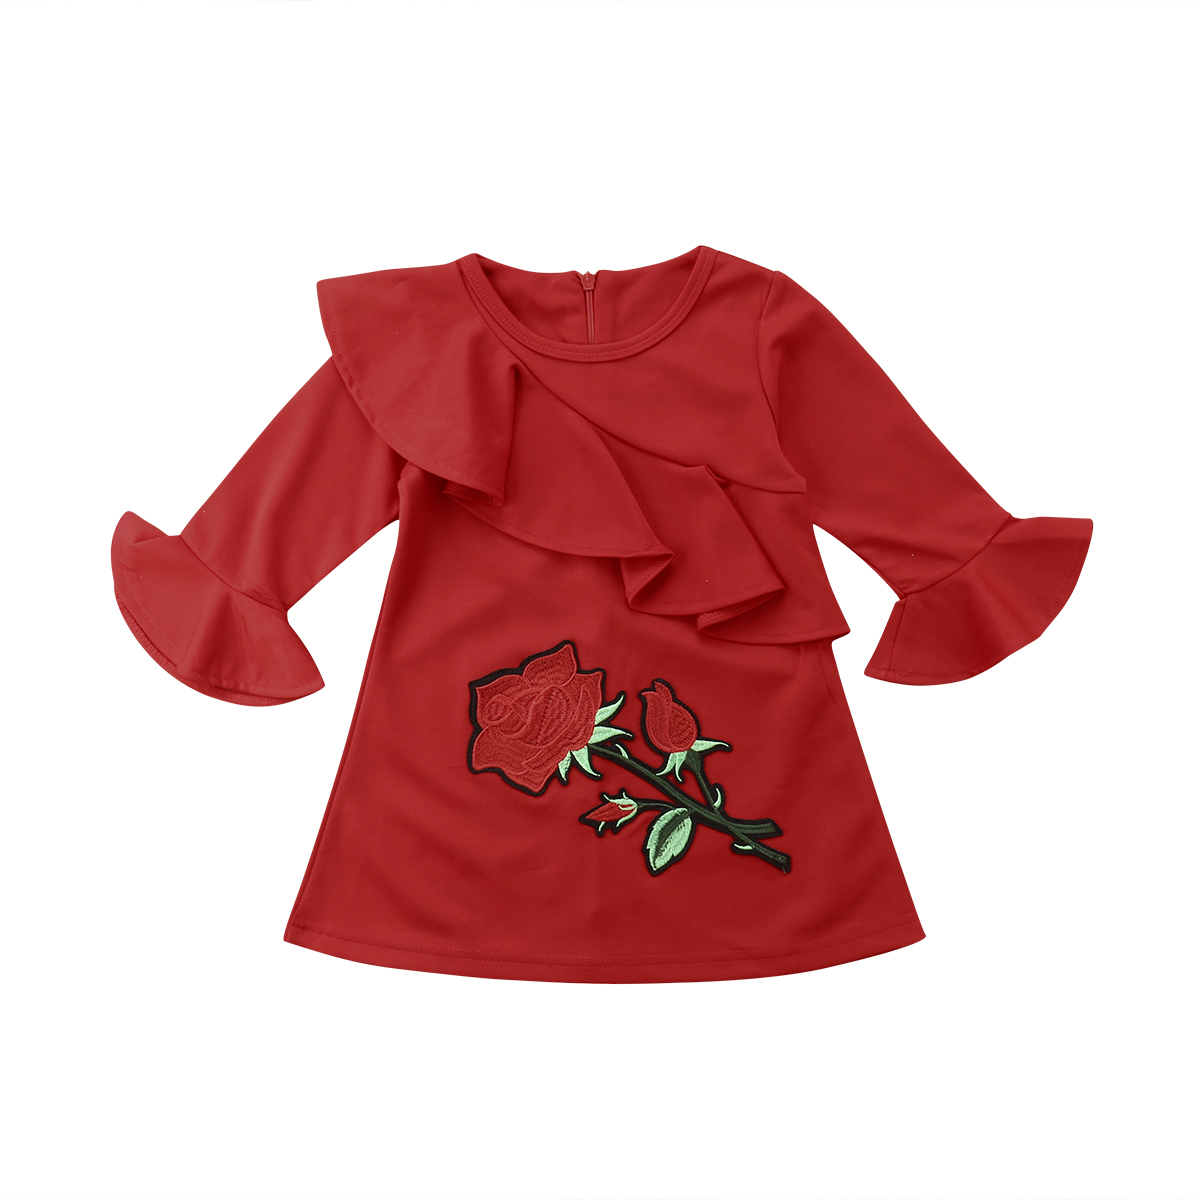 Christmas Kids Baby Girl Clothes Embroidery Flower Ruffle